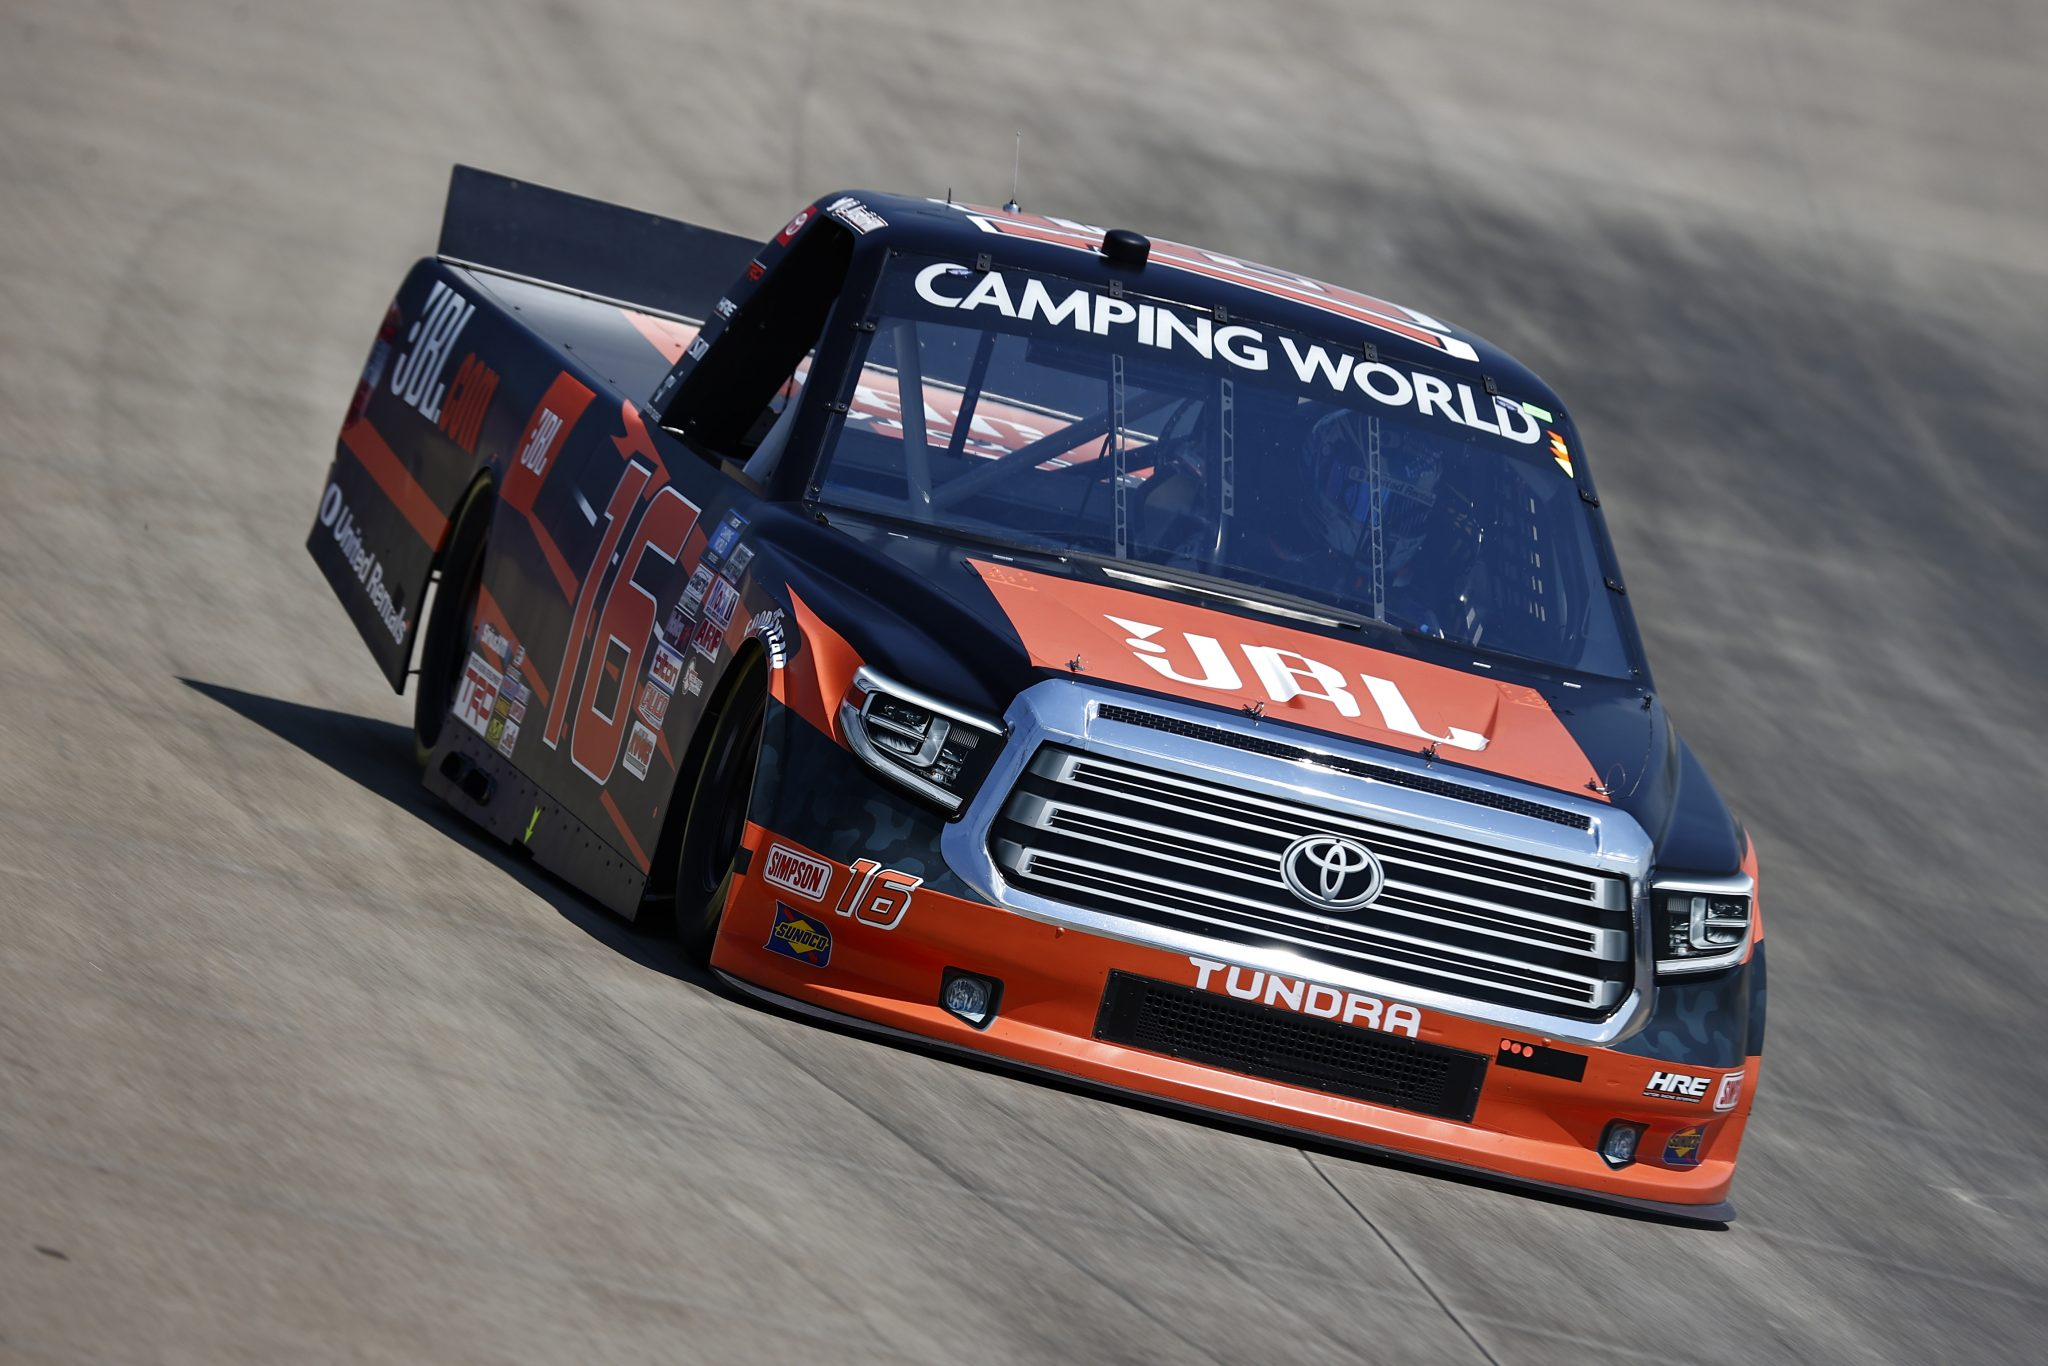 LEBANON, TENNESSEE - JUNE 18: Austin Hill, driver of the #16 JBL Toyota, drives during practice for the NASCAR Camping World Truck Series Rackley Roofing 200 at Nashville Superspeedway on June 18, 2021 in Lebanon, Tennessee. (Photo by Jared C. Tilton/Getty Images) | Getty Images